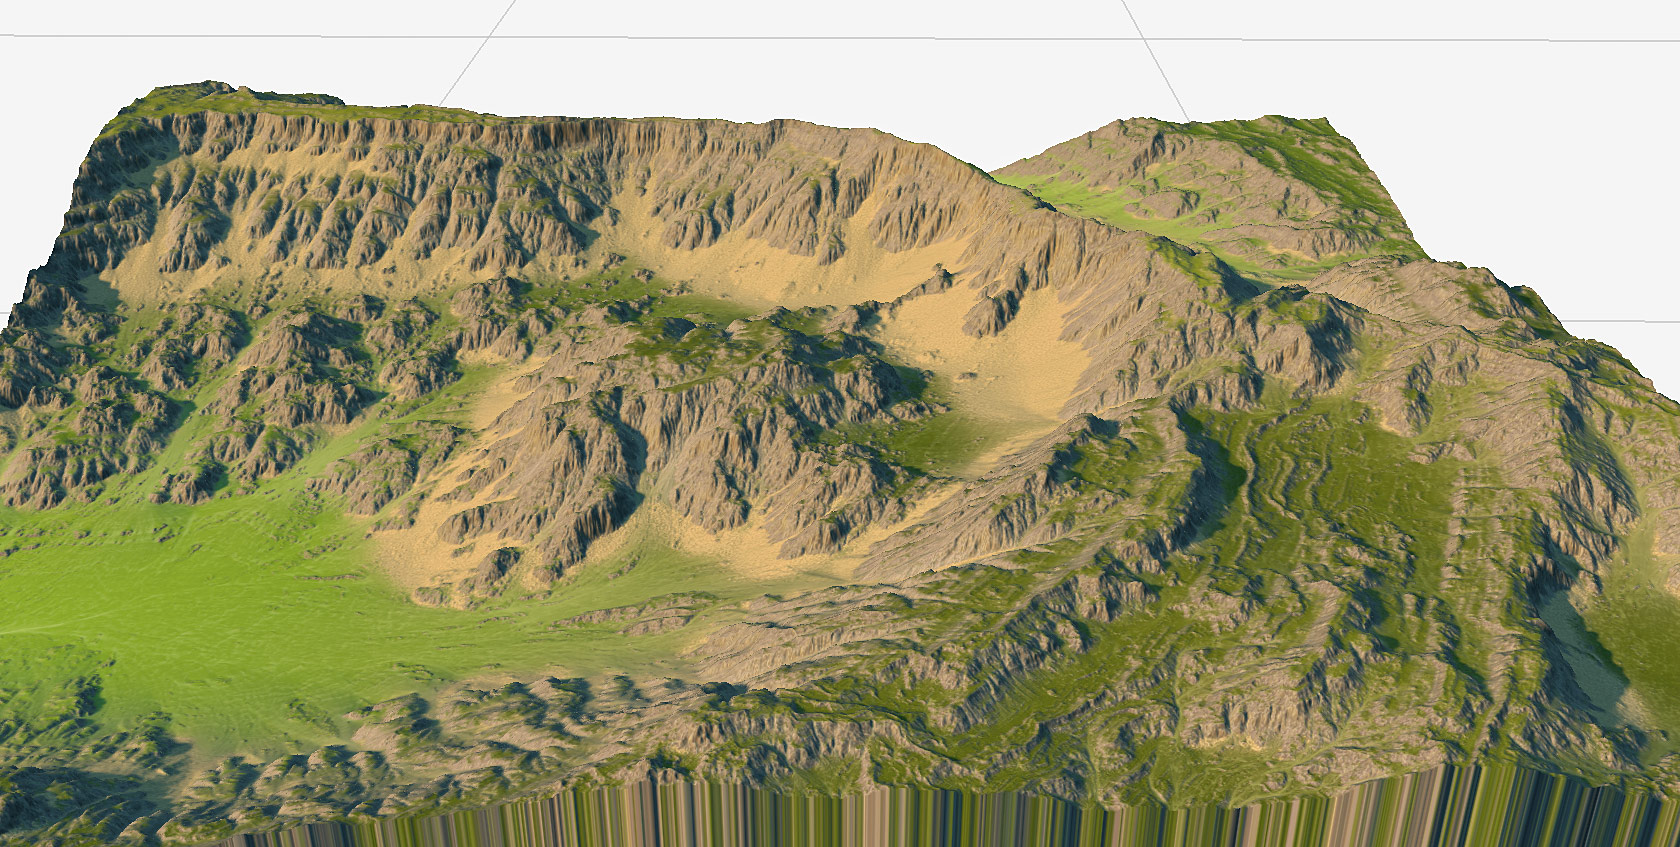 World Machine Features for Terrain Generation